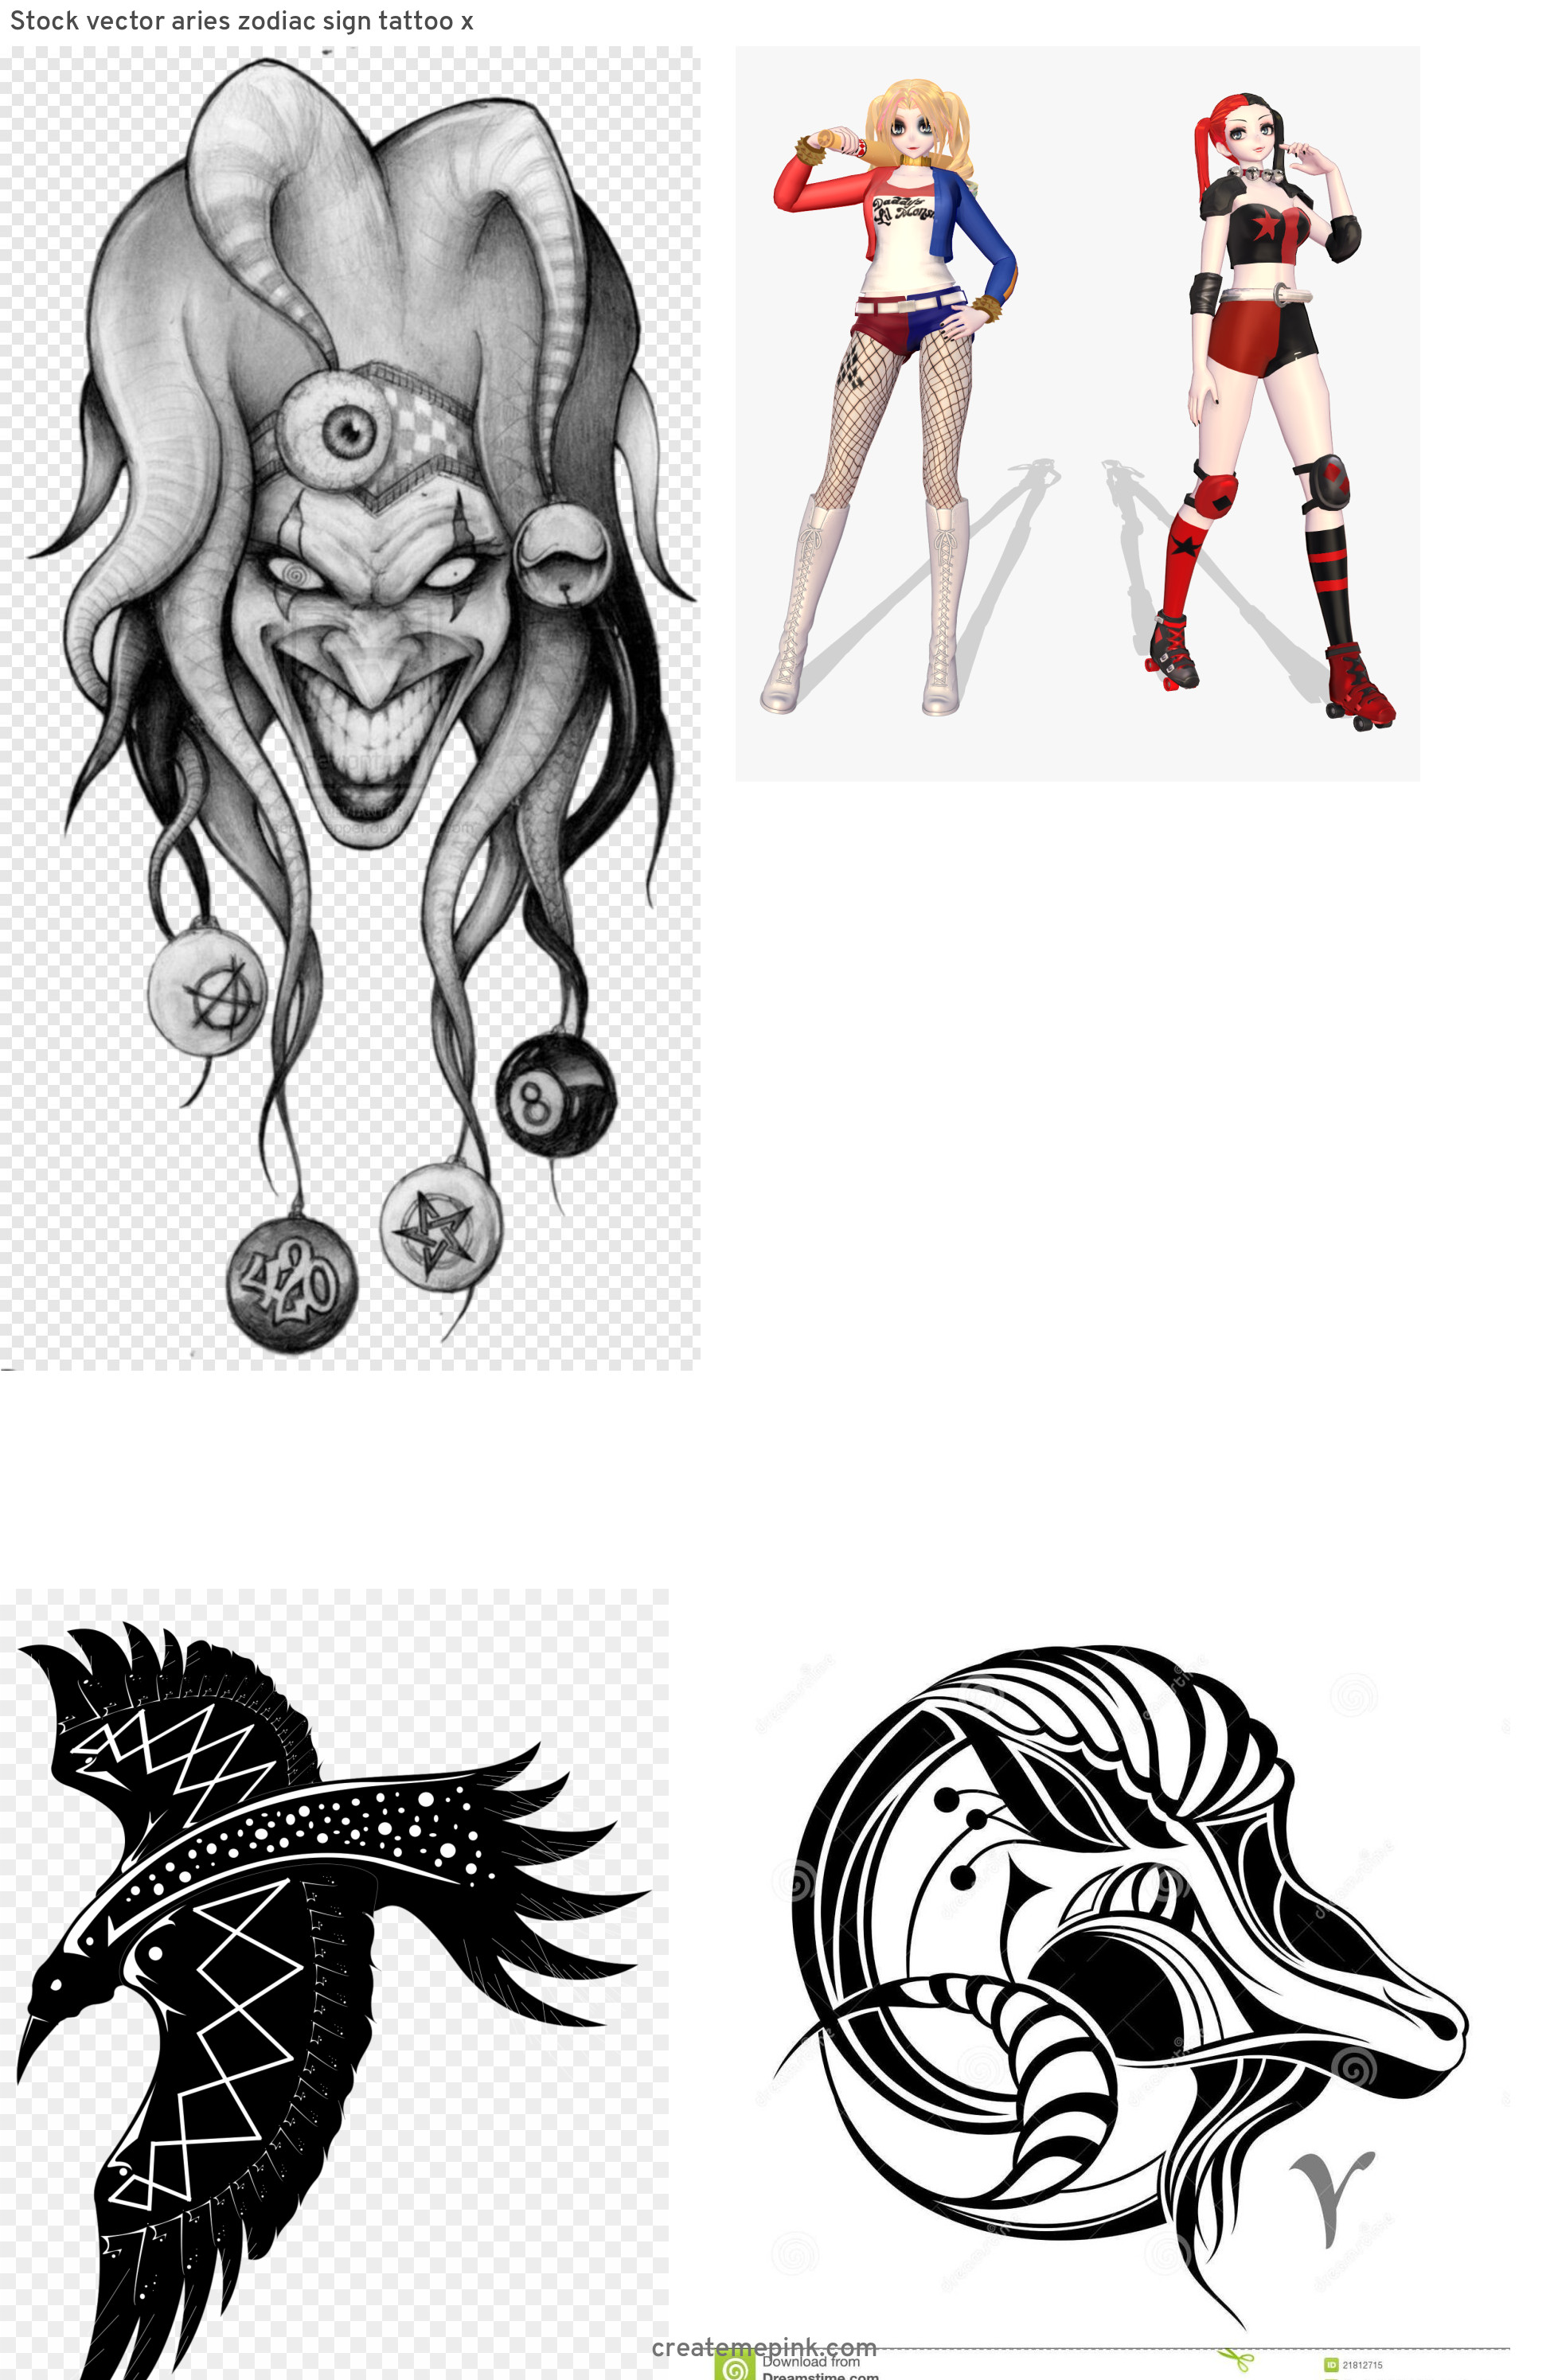 Harley Quinn Black And White Vector: Stock Vector Aries Zodiac Sign Tattoo X